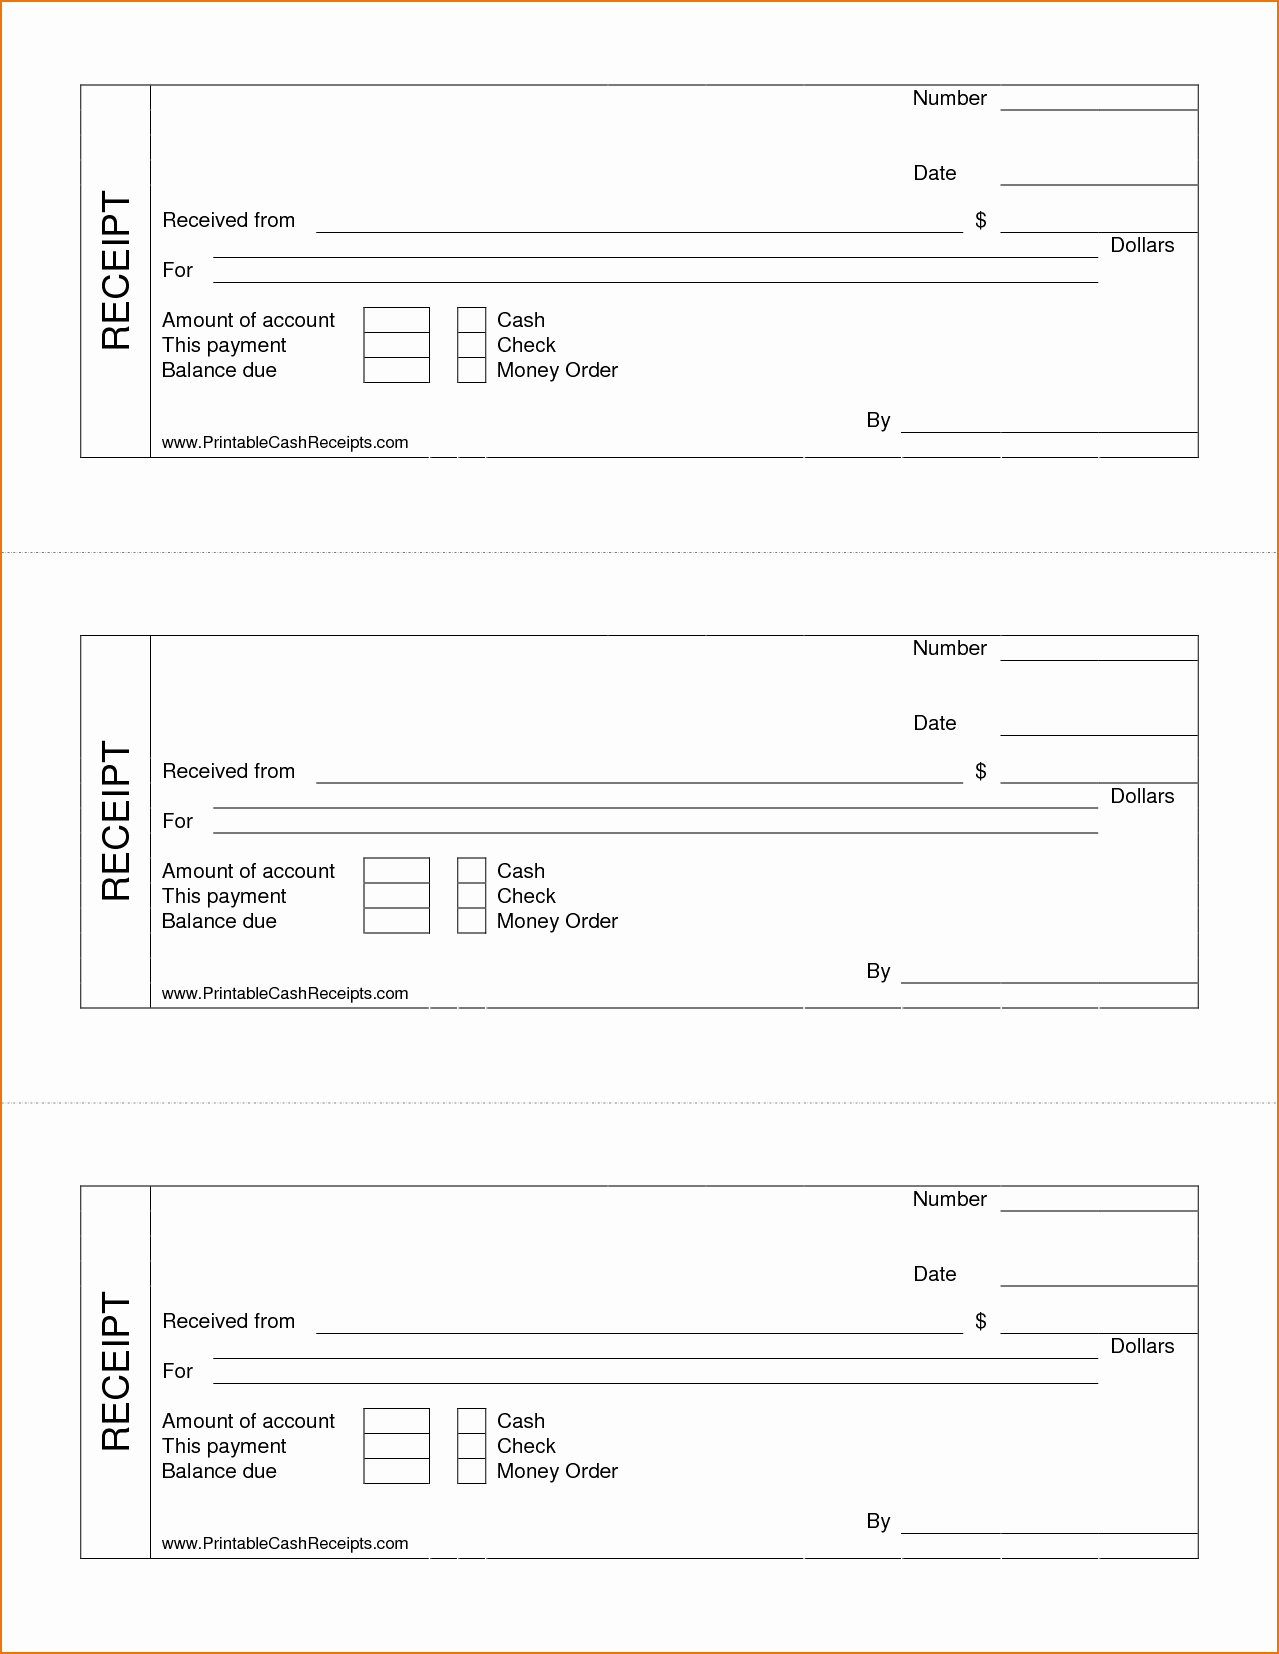 Receipt for Services Template Free Elegant Printable Receipt for Services